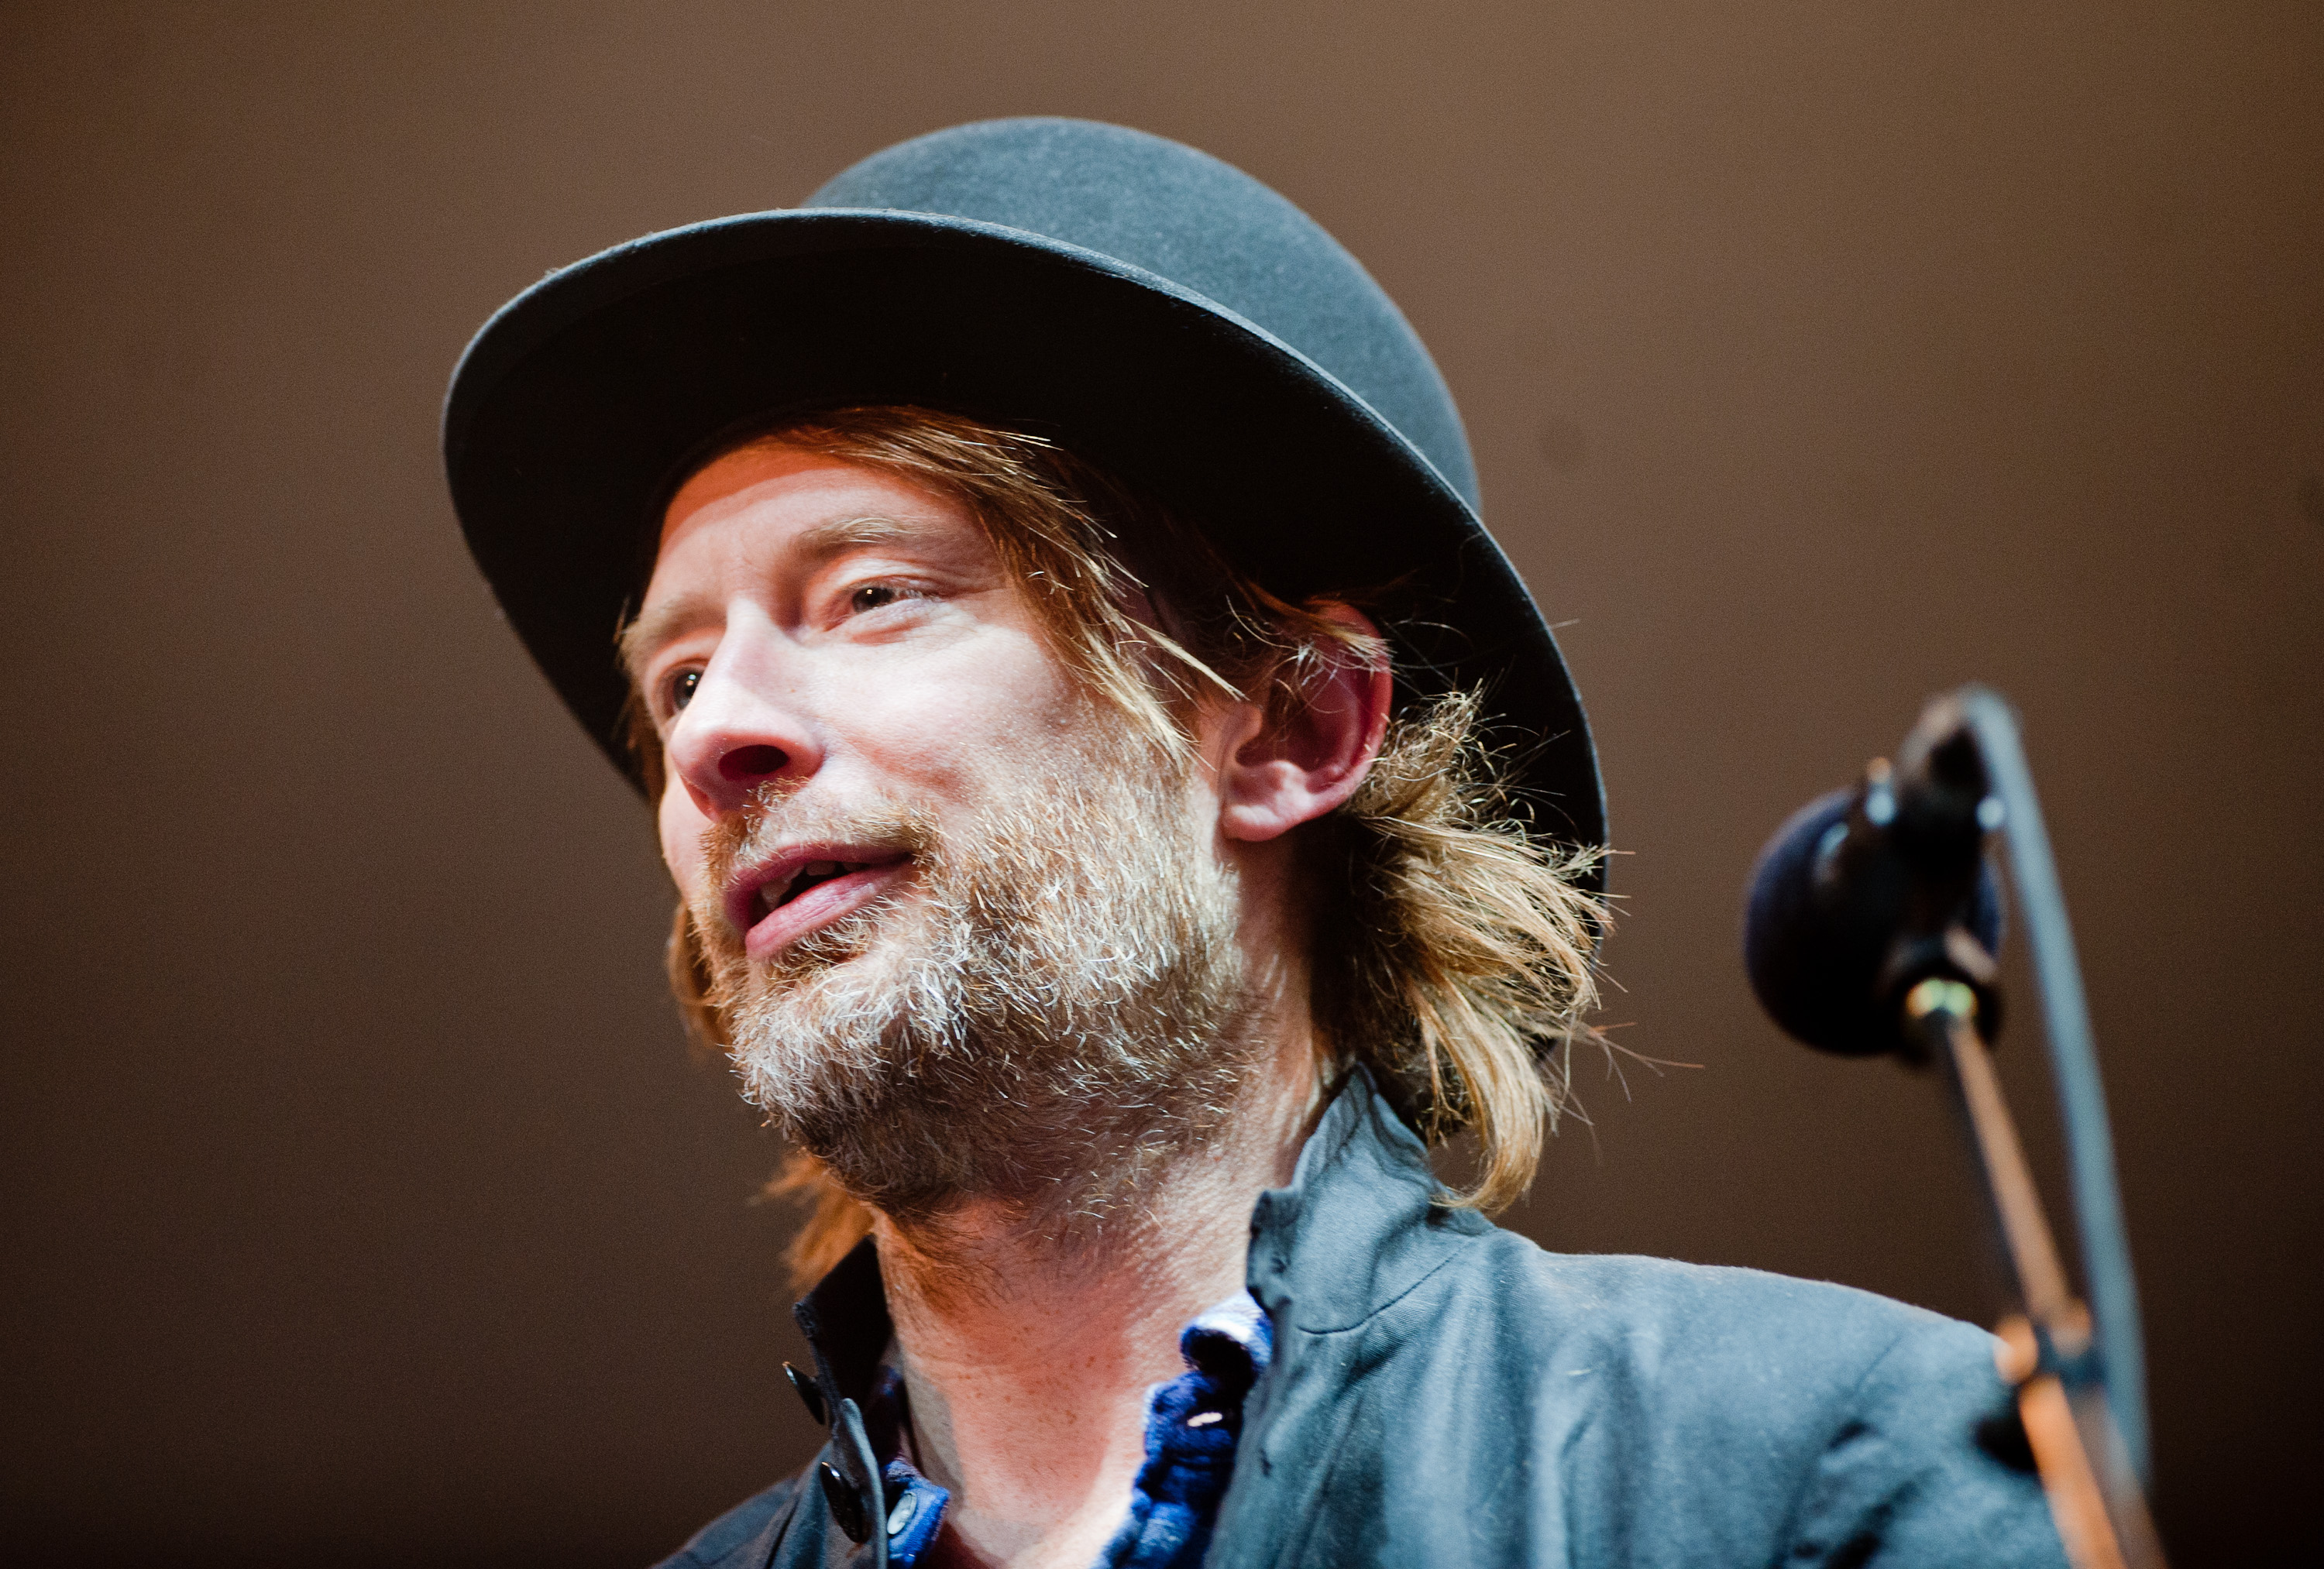 Thom Yorke performs on Day 2 of The Big Chill Festival in Ledbury, England on Aug. 6, 2010.